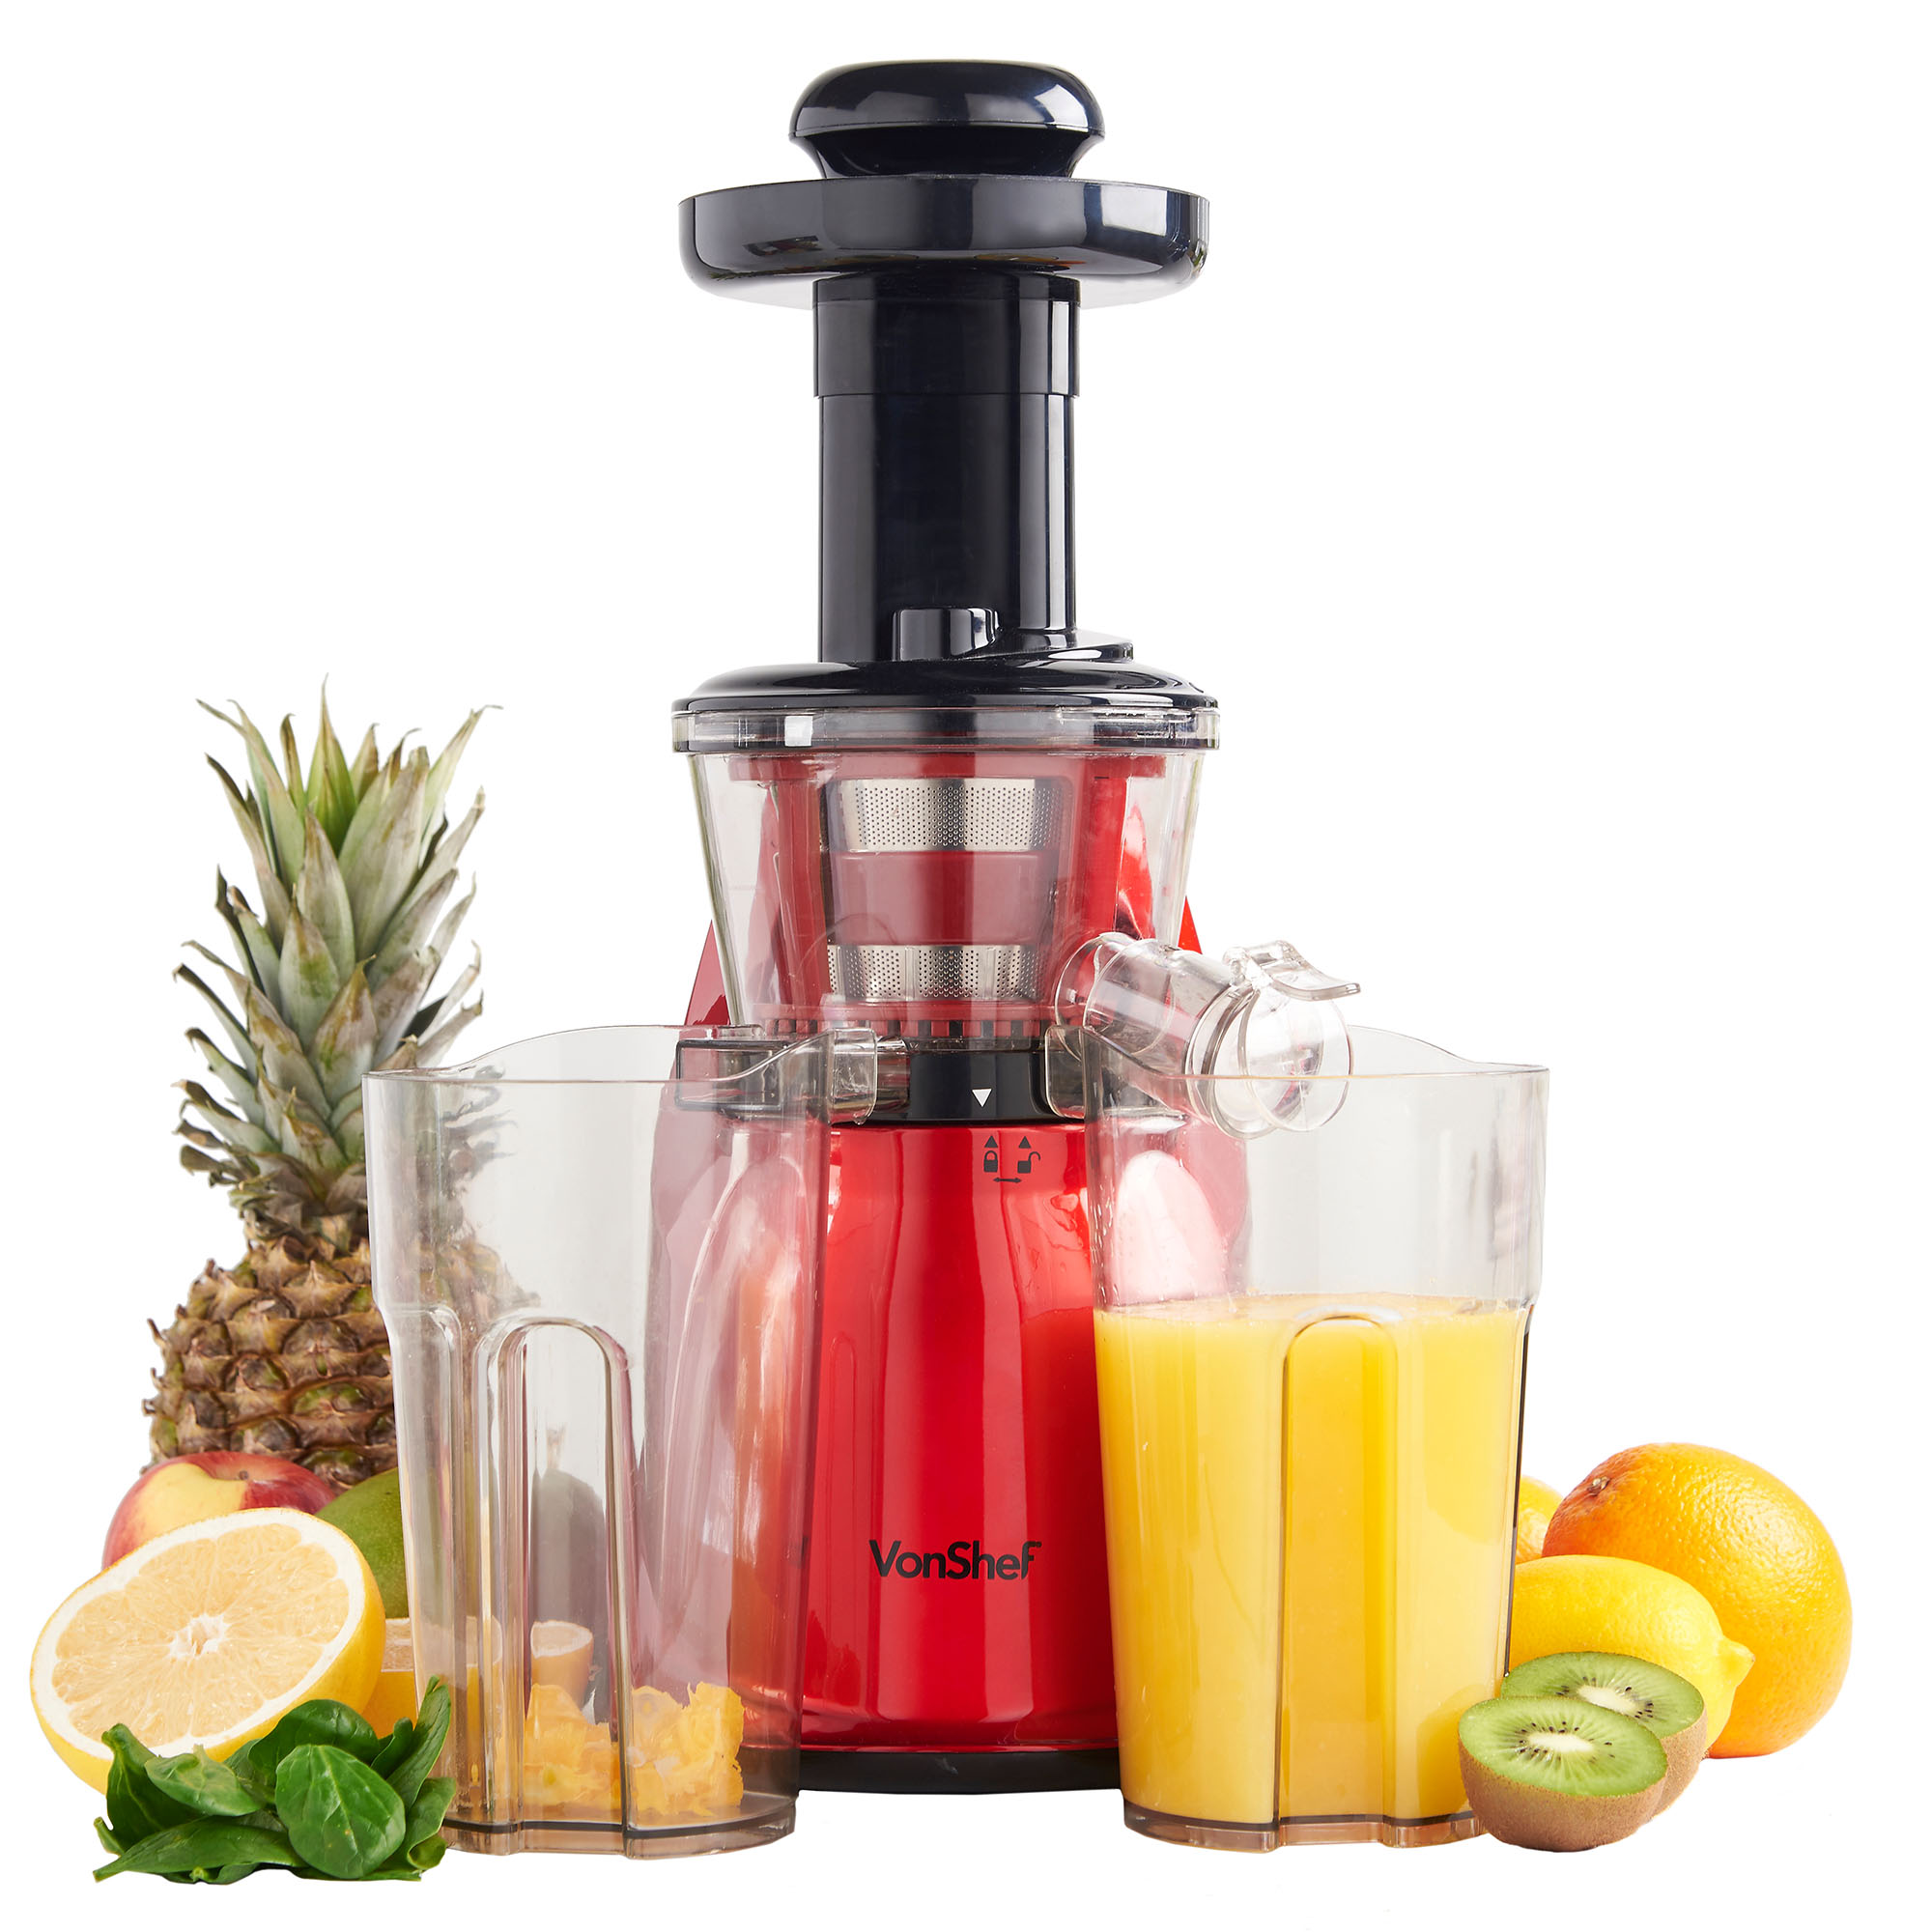 vonShef Premium Slow Masticating Juicer Electric vegetable Juice Extractor - Red eBay